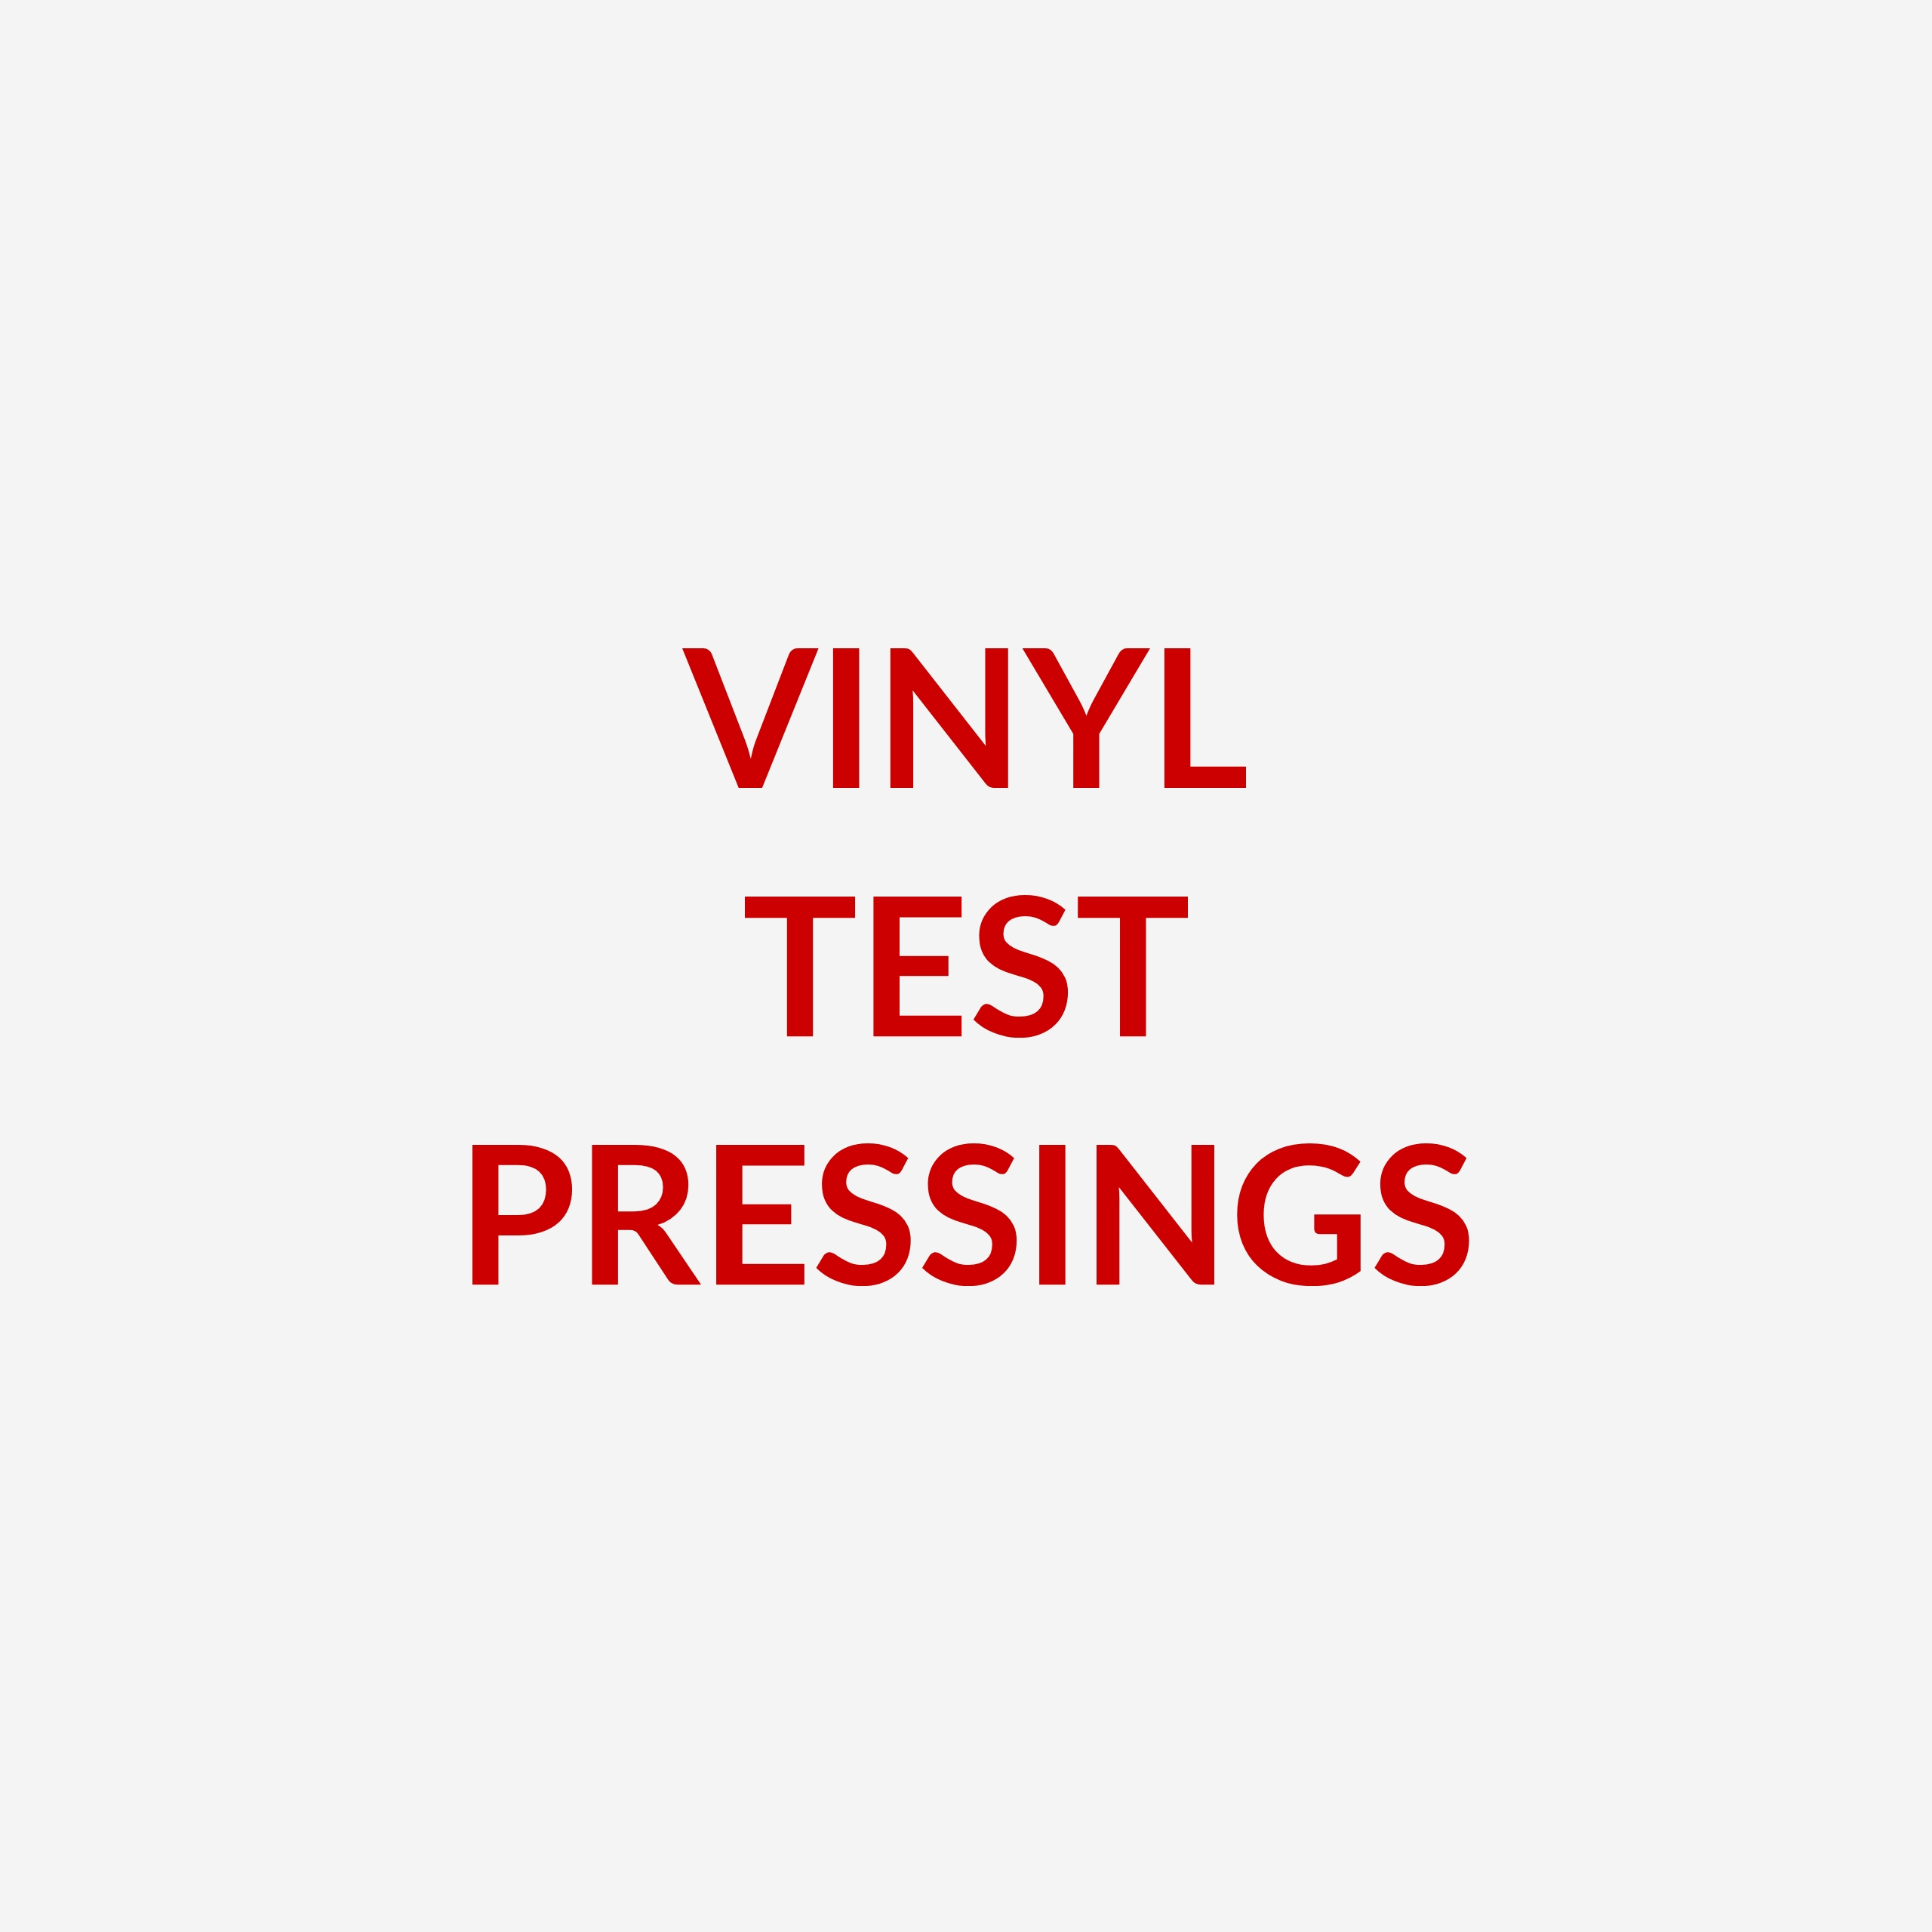 Vinyl Test Pressings